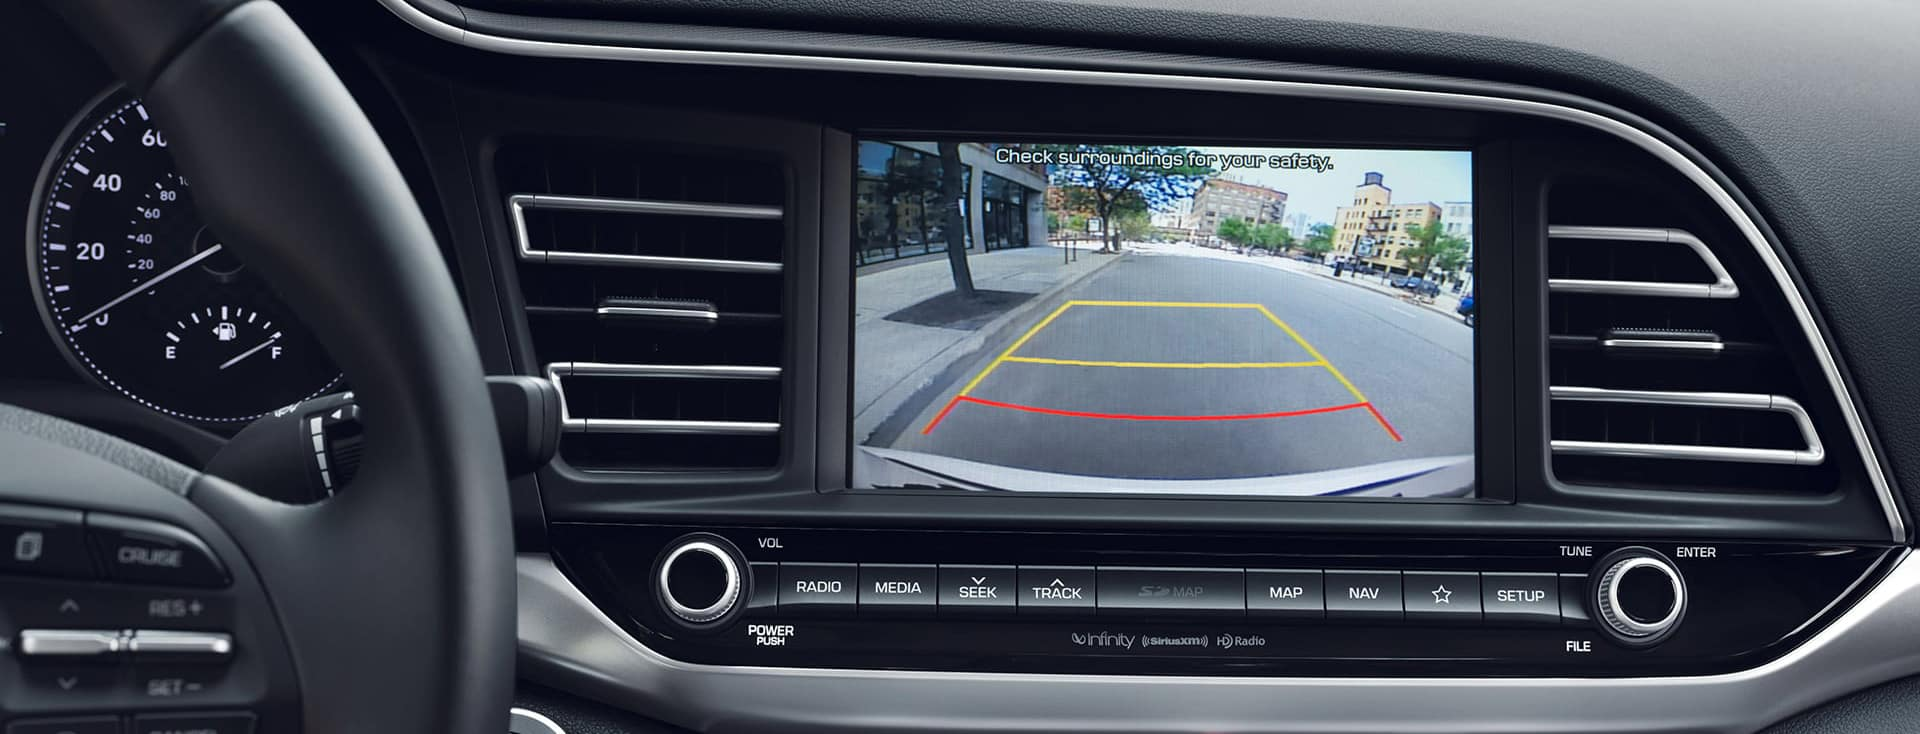 2020 Hyundai Elantra Safety Features